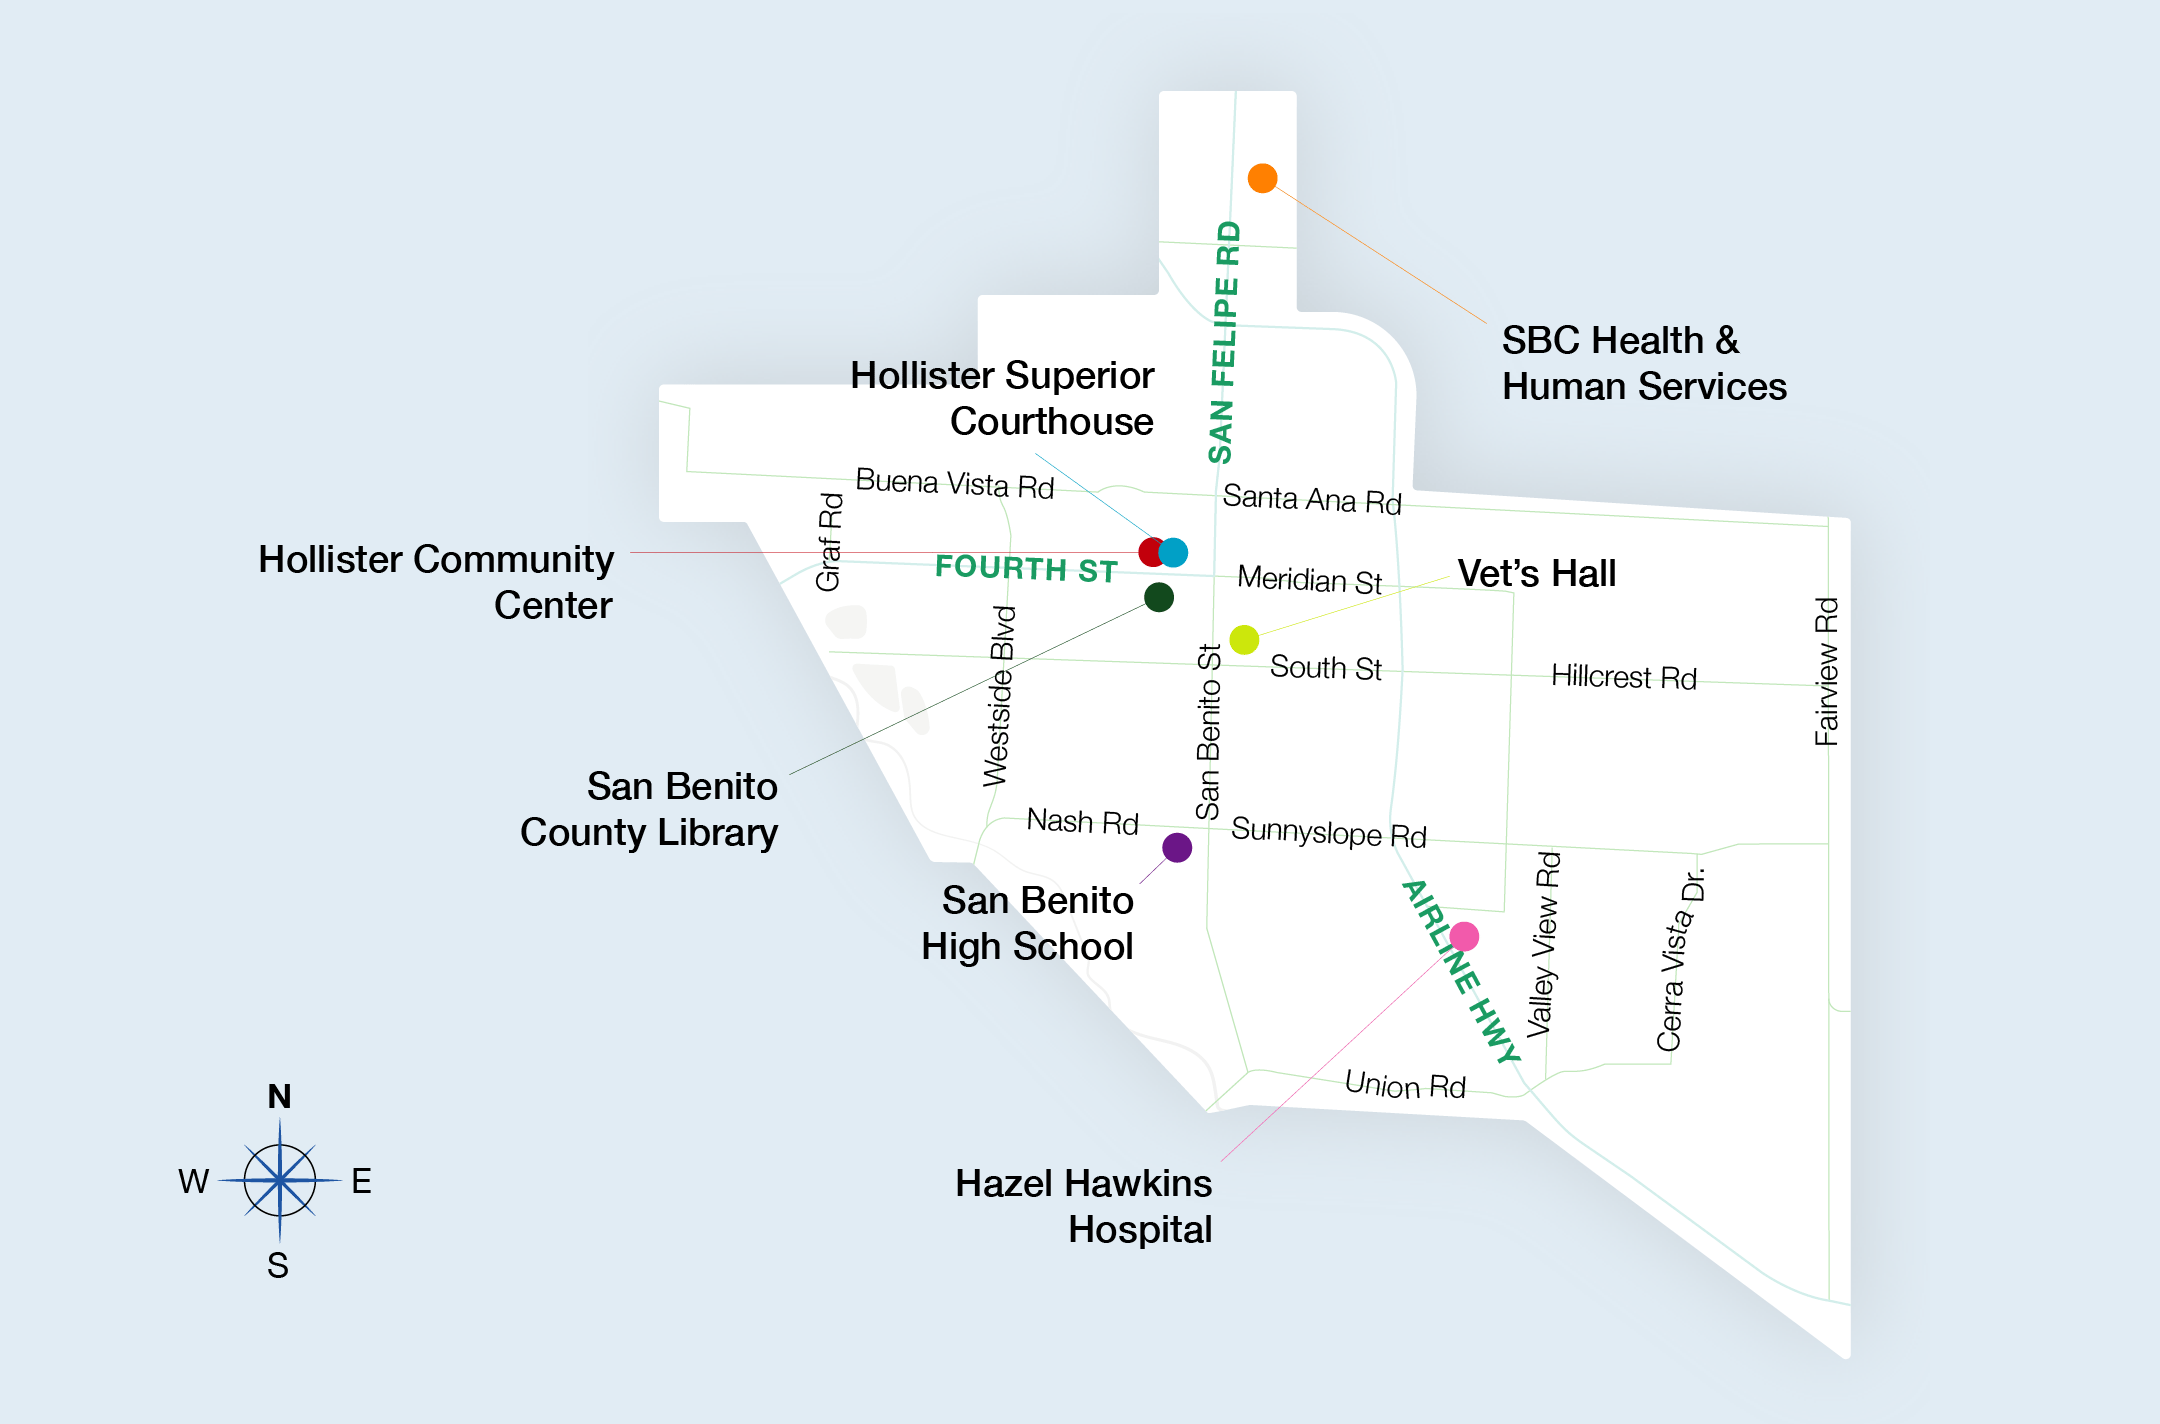 Go County Express Service Map Hollister